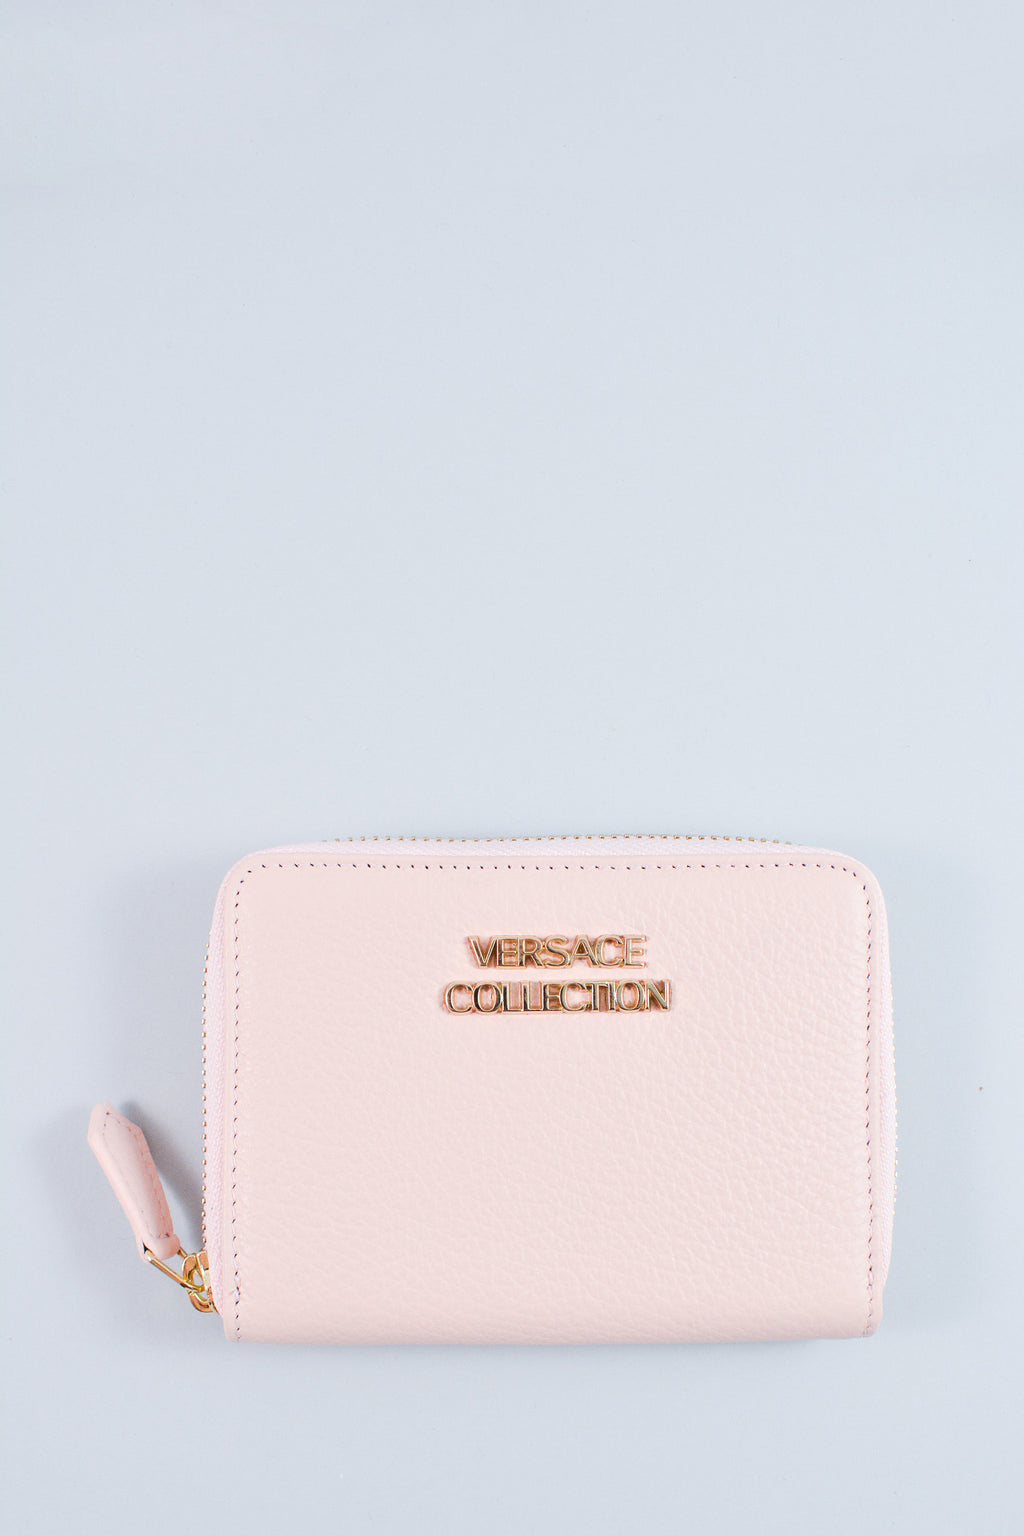 Versace Collection Pink Saffiano Leather Small Wallet